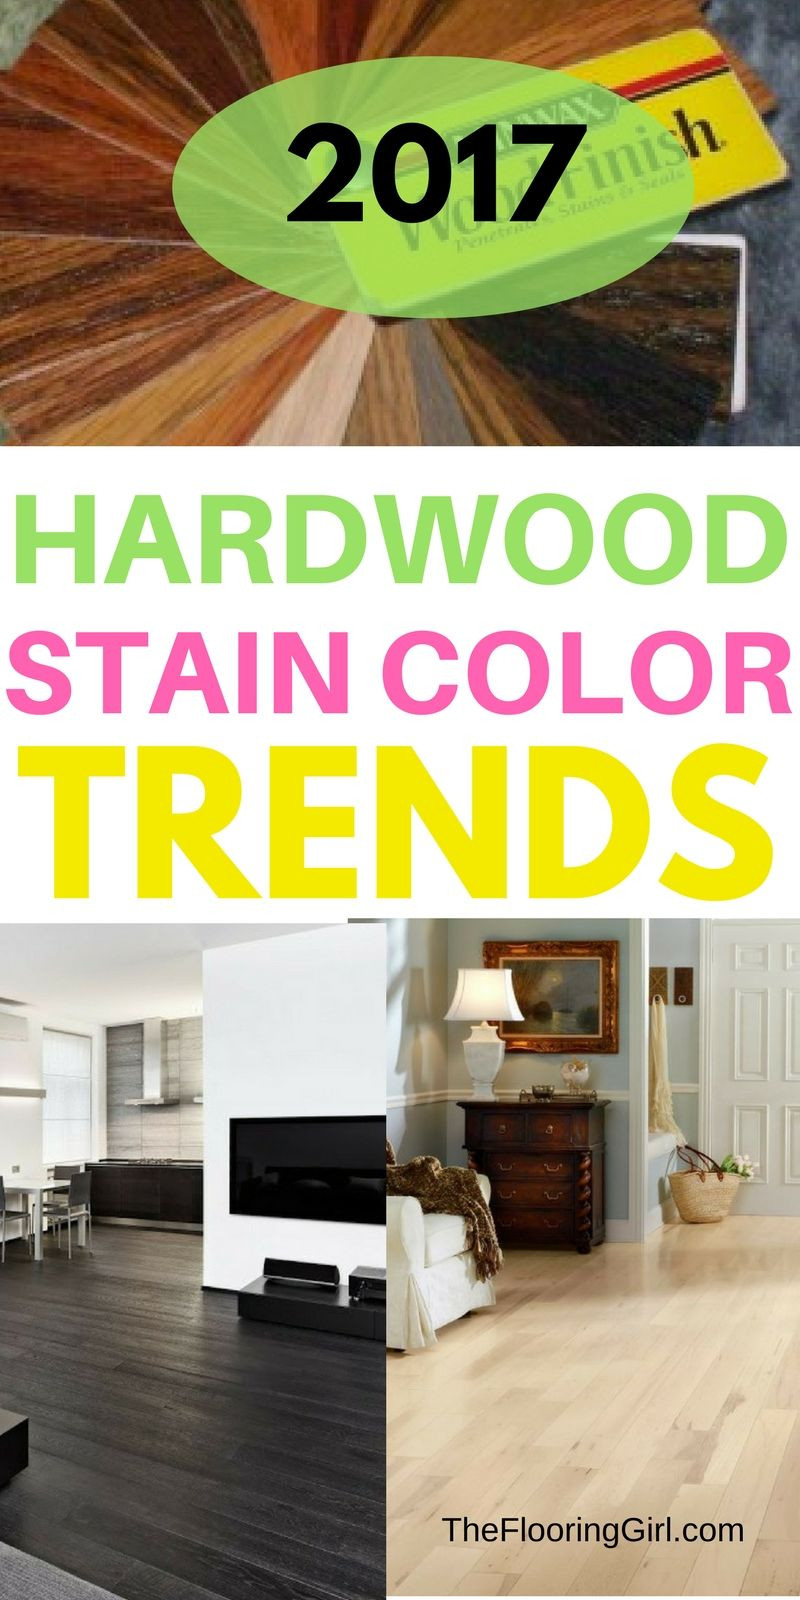 what is the cost to refinish hardwood floors of hardwood flooring stain color trends 2018 more from the flooring for hardwood flooring stain color trends for 2017 hardwood colors that are in style theflooringgirl com